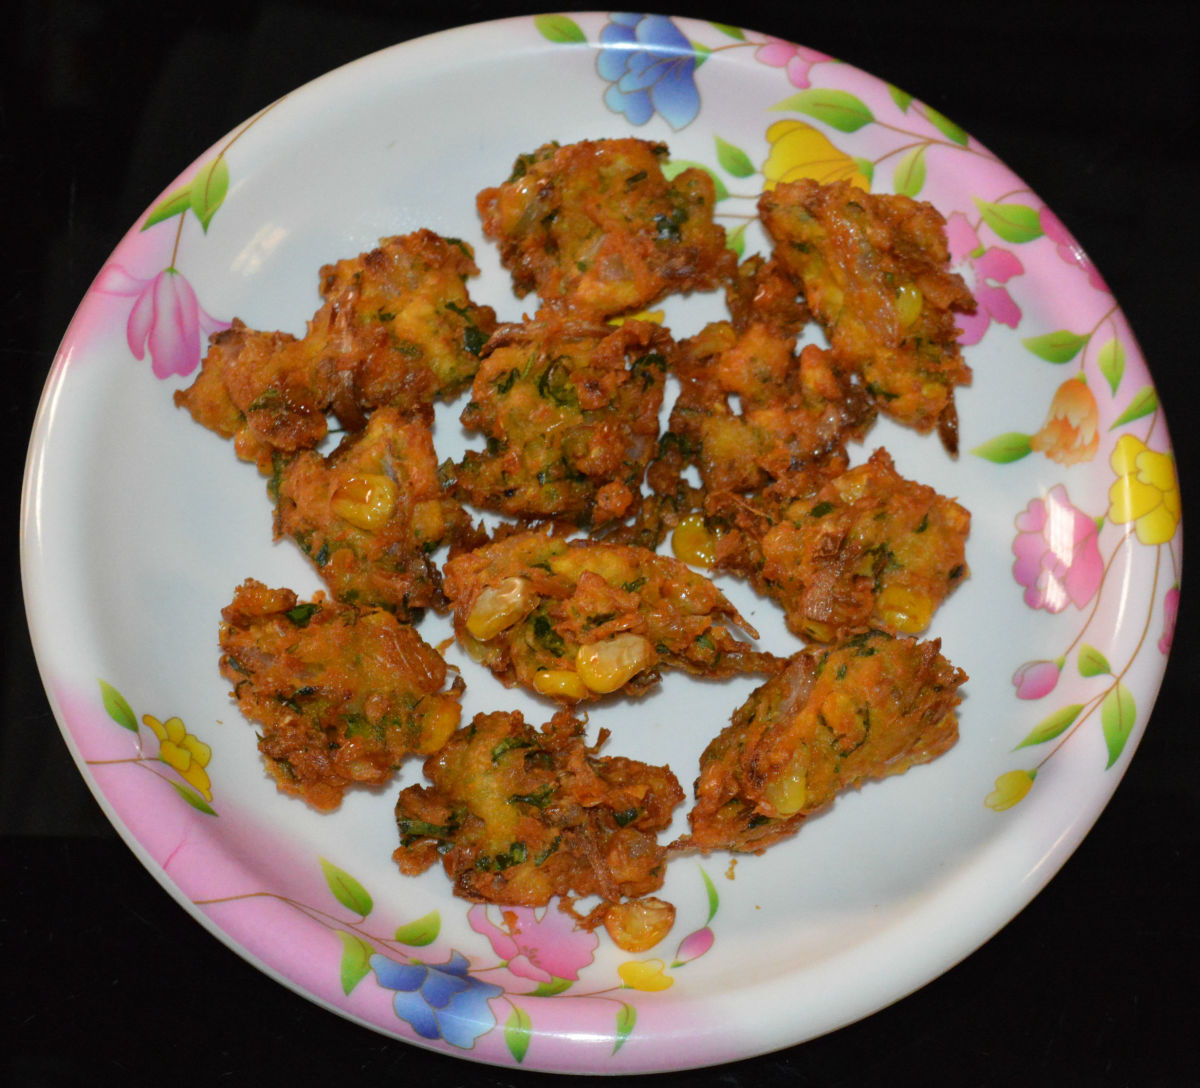 These mouthwatering corn fritters are ready to serve! Eat them hot and enjoy the taste!